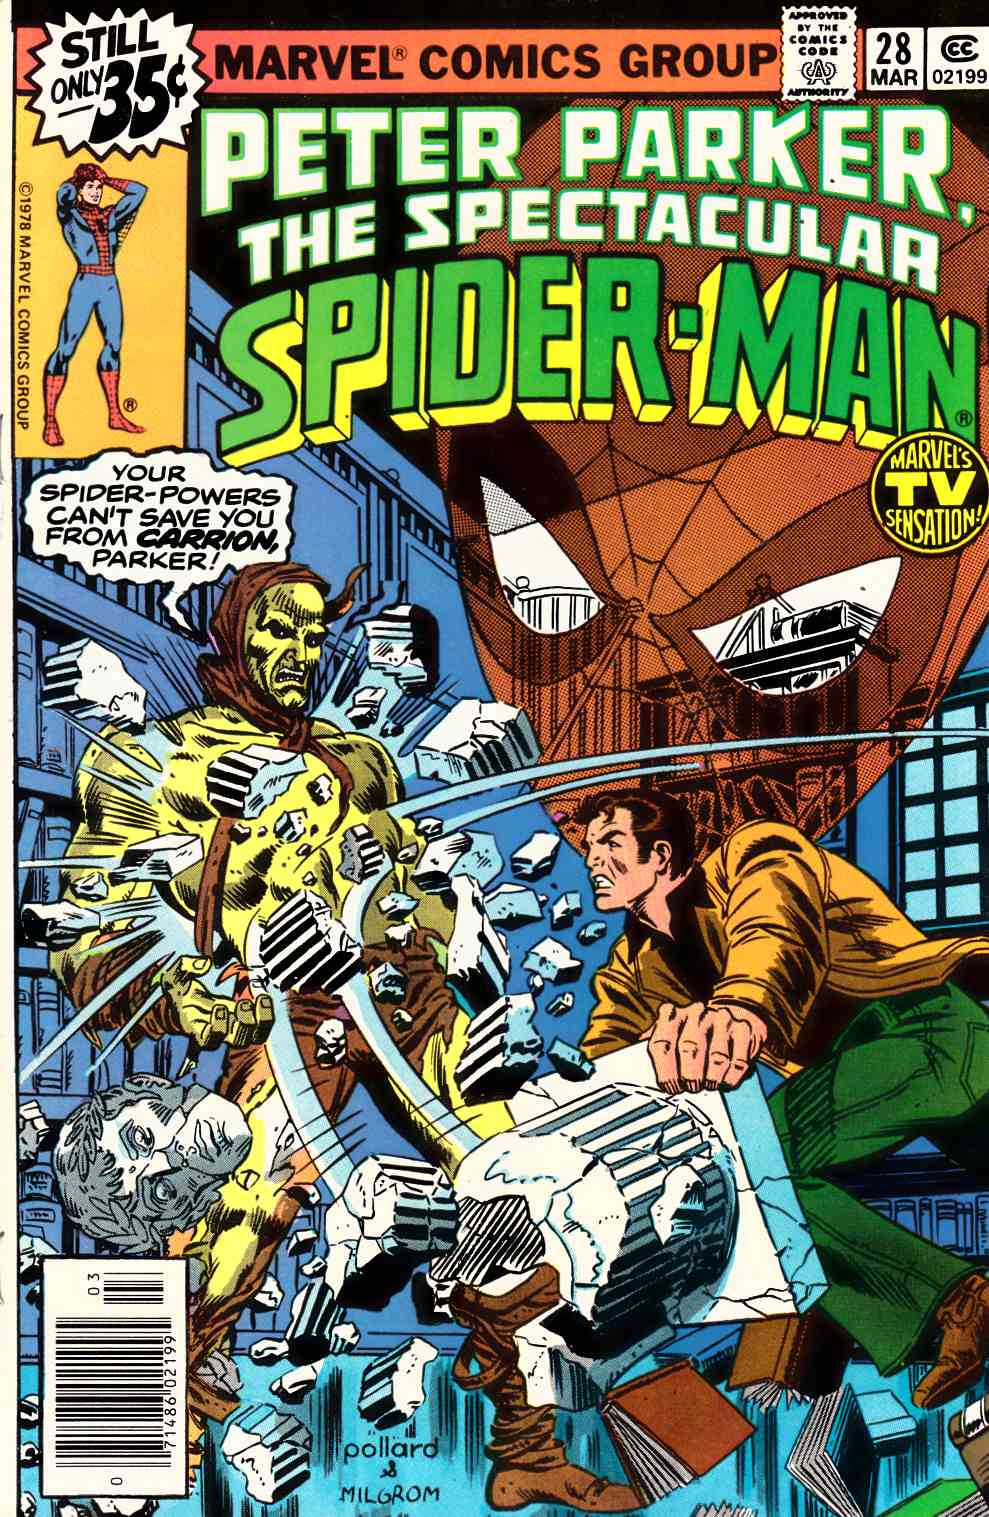 Peter Parker Spectacular Spider-Man #28 Very Fine (8.0) [Marvel Comic] THUMBNAIL